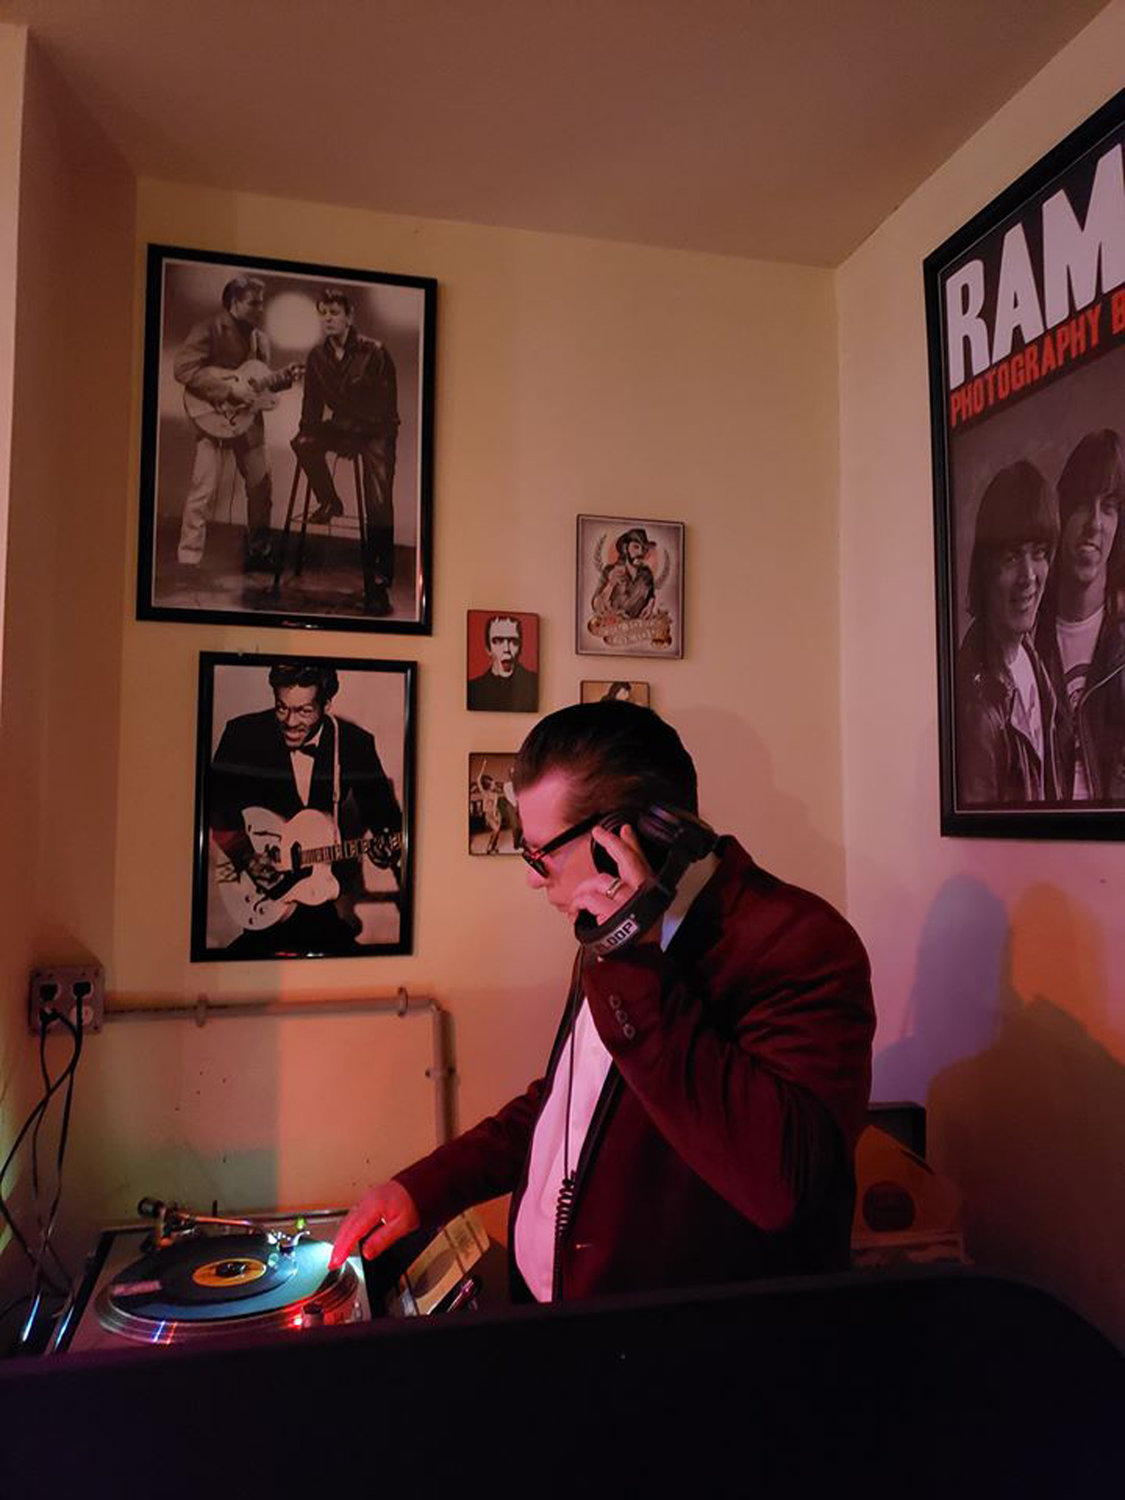 DJ Rockin' Daddy-O is one of many DJs who contribute to the scene at the bar.